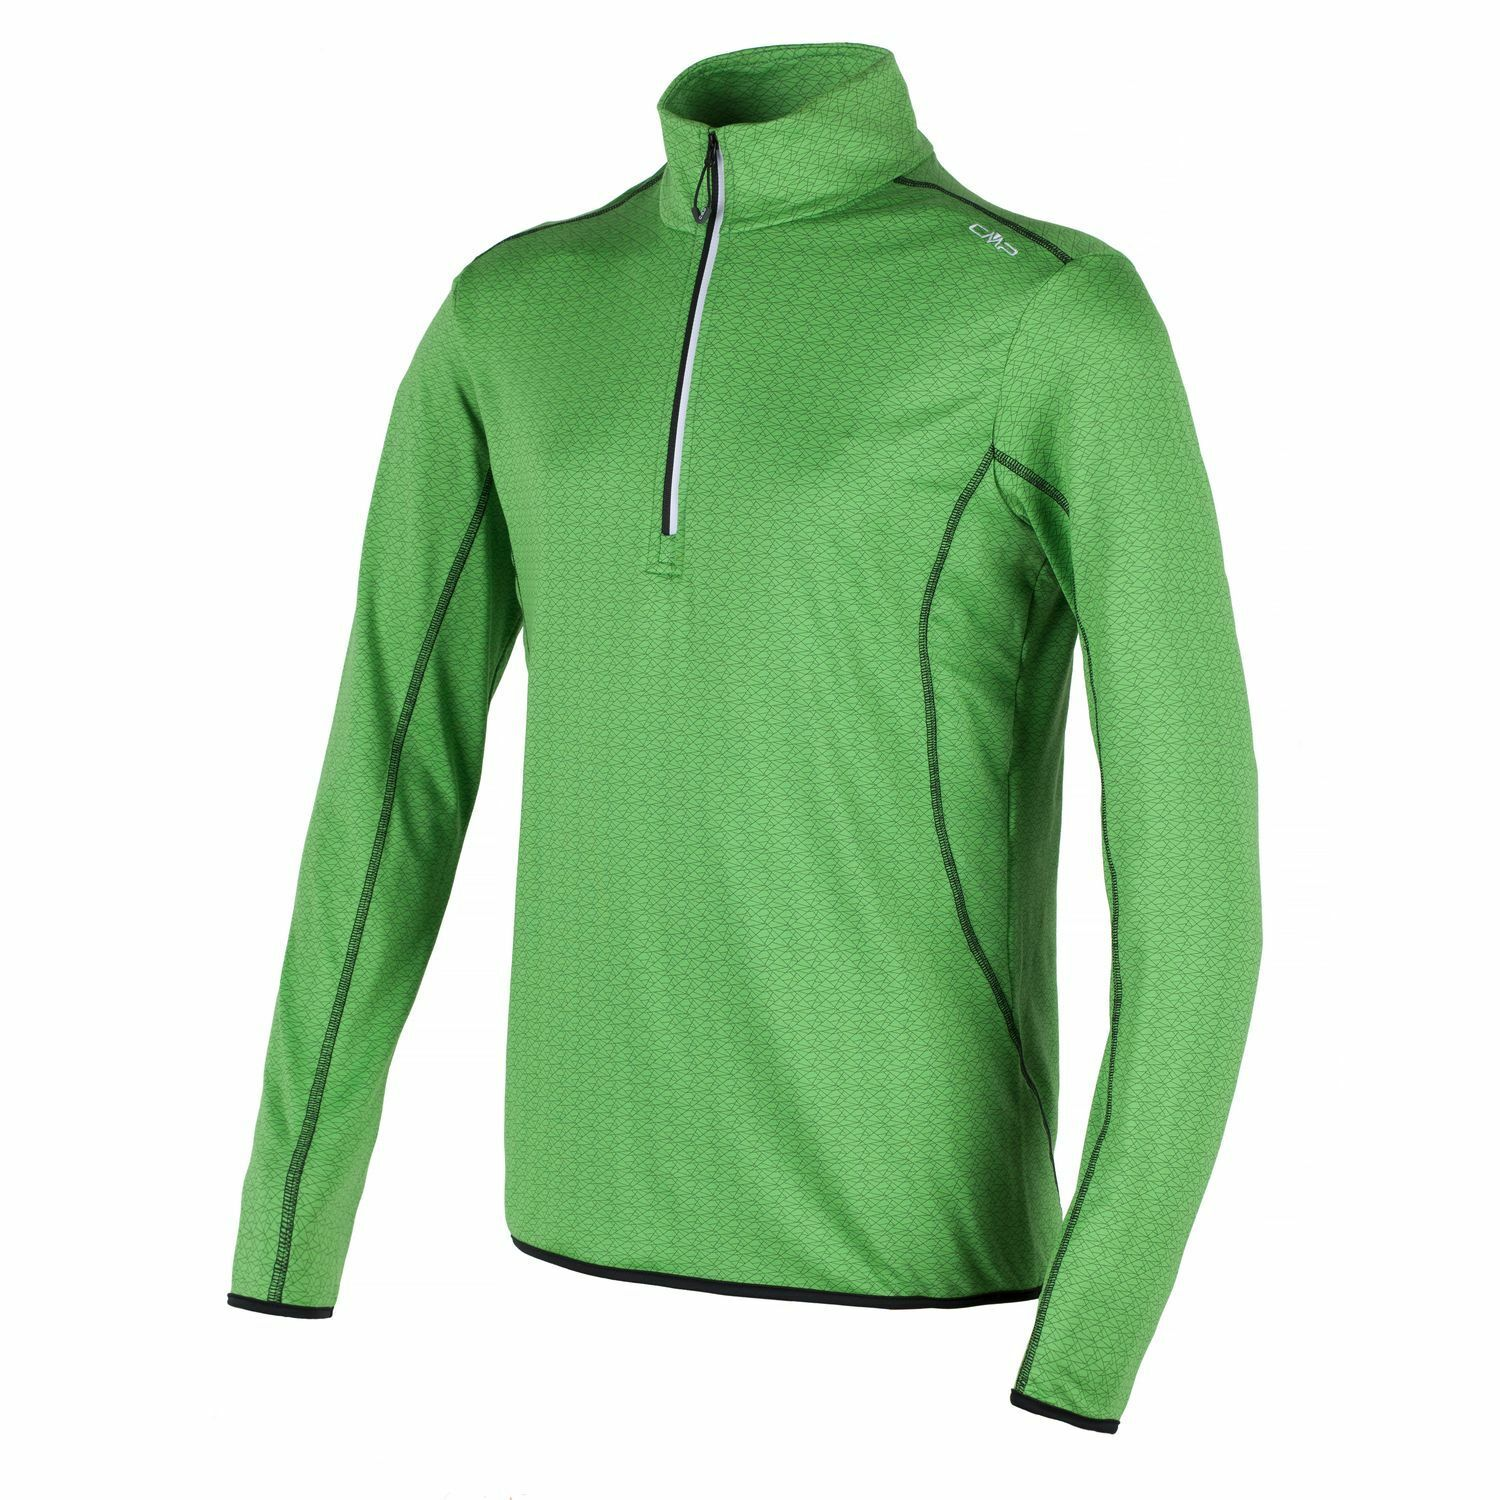 CMP Sweatshirt Function Top  Sports Shirt Light Green Softech Stretch  no tax